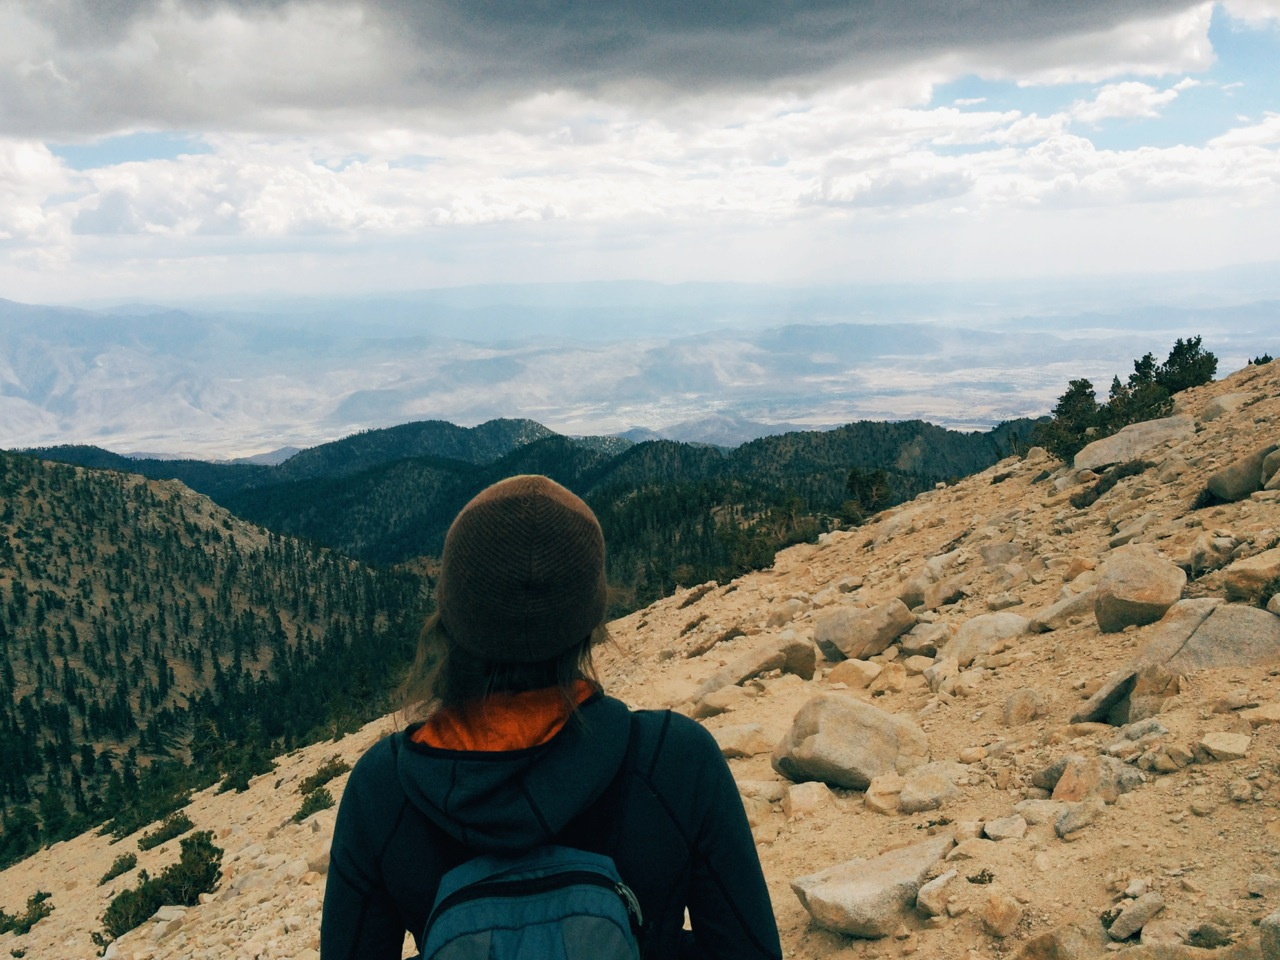 The views from the top, and on the way down, were amazingly expansive despite the hazy weather. We saw out to San Jacinto Peak (second tallest in So Cal), Big Bear Lake, Joshua Tree, and south all the way into Mexico.